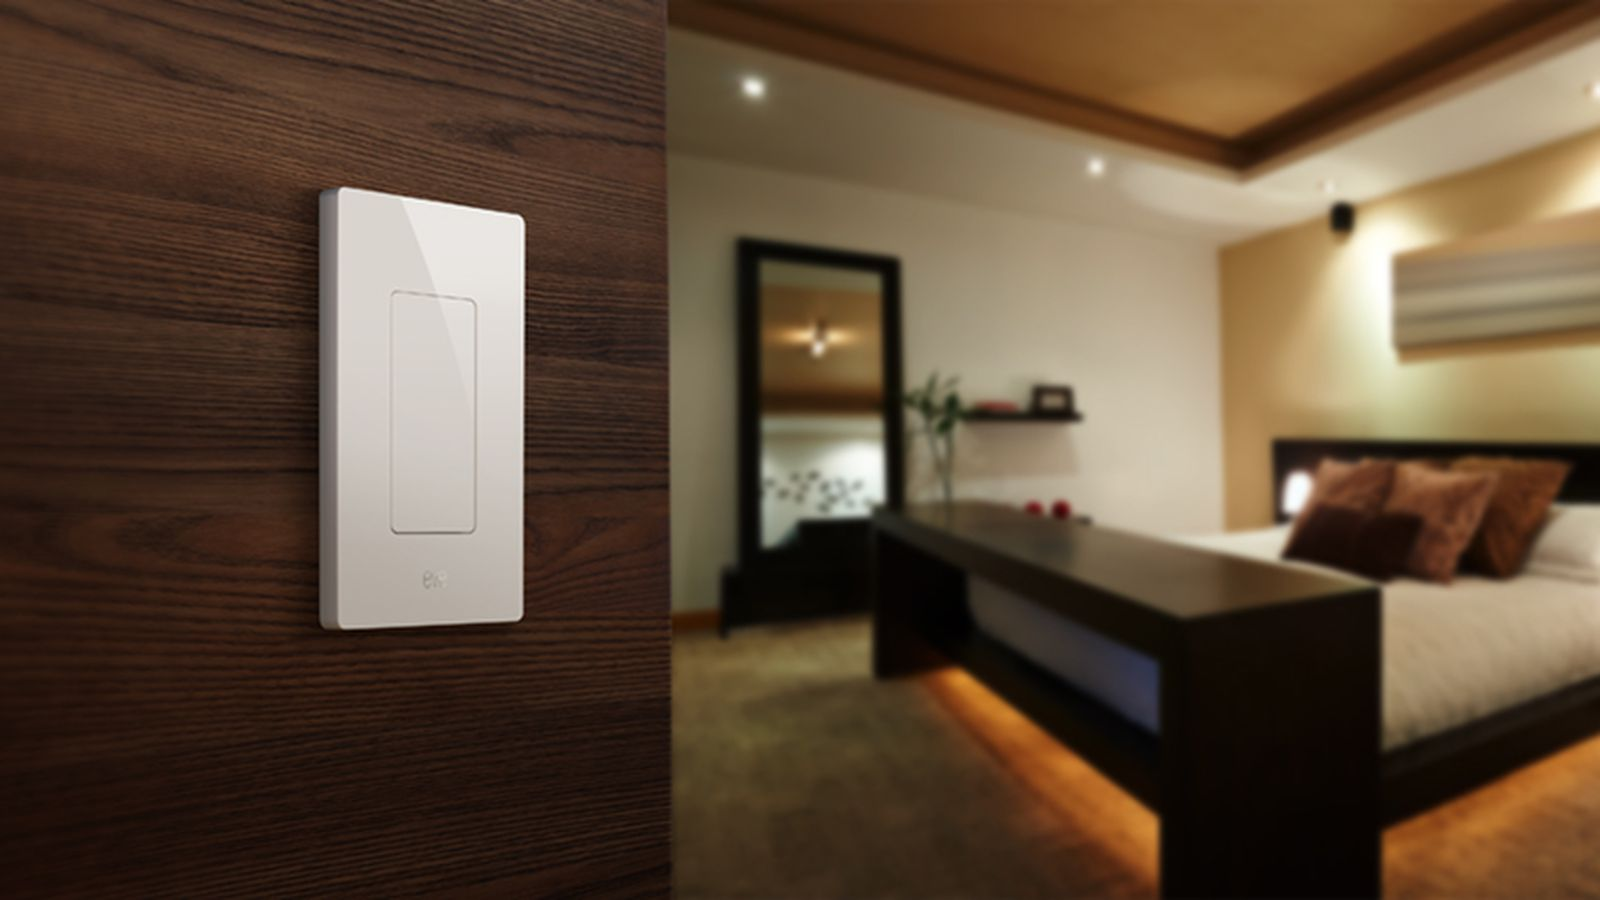 There U2019s Now A Light Switch For Apple U2019s Homekit